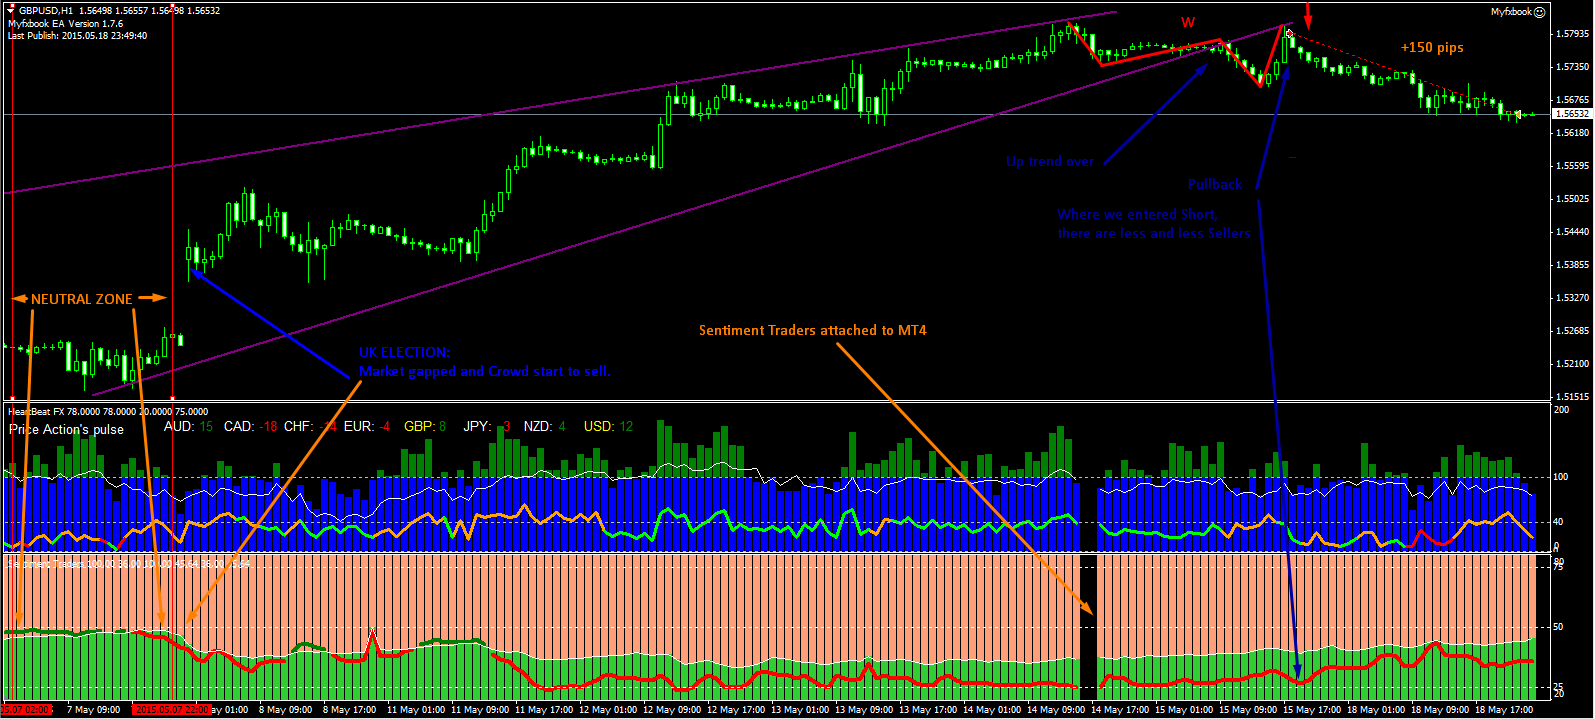 Real time forex sentiment indicator